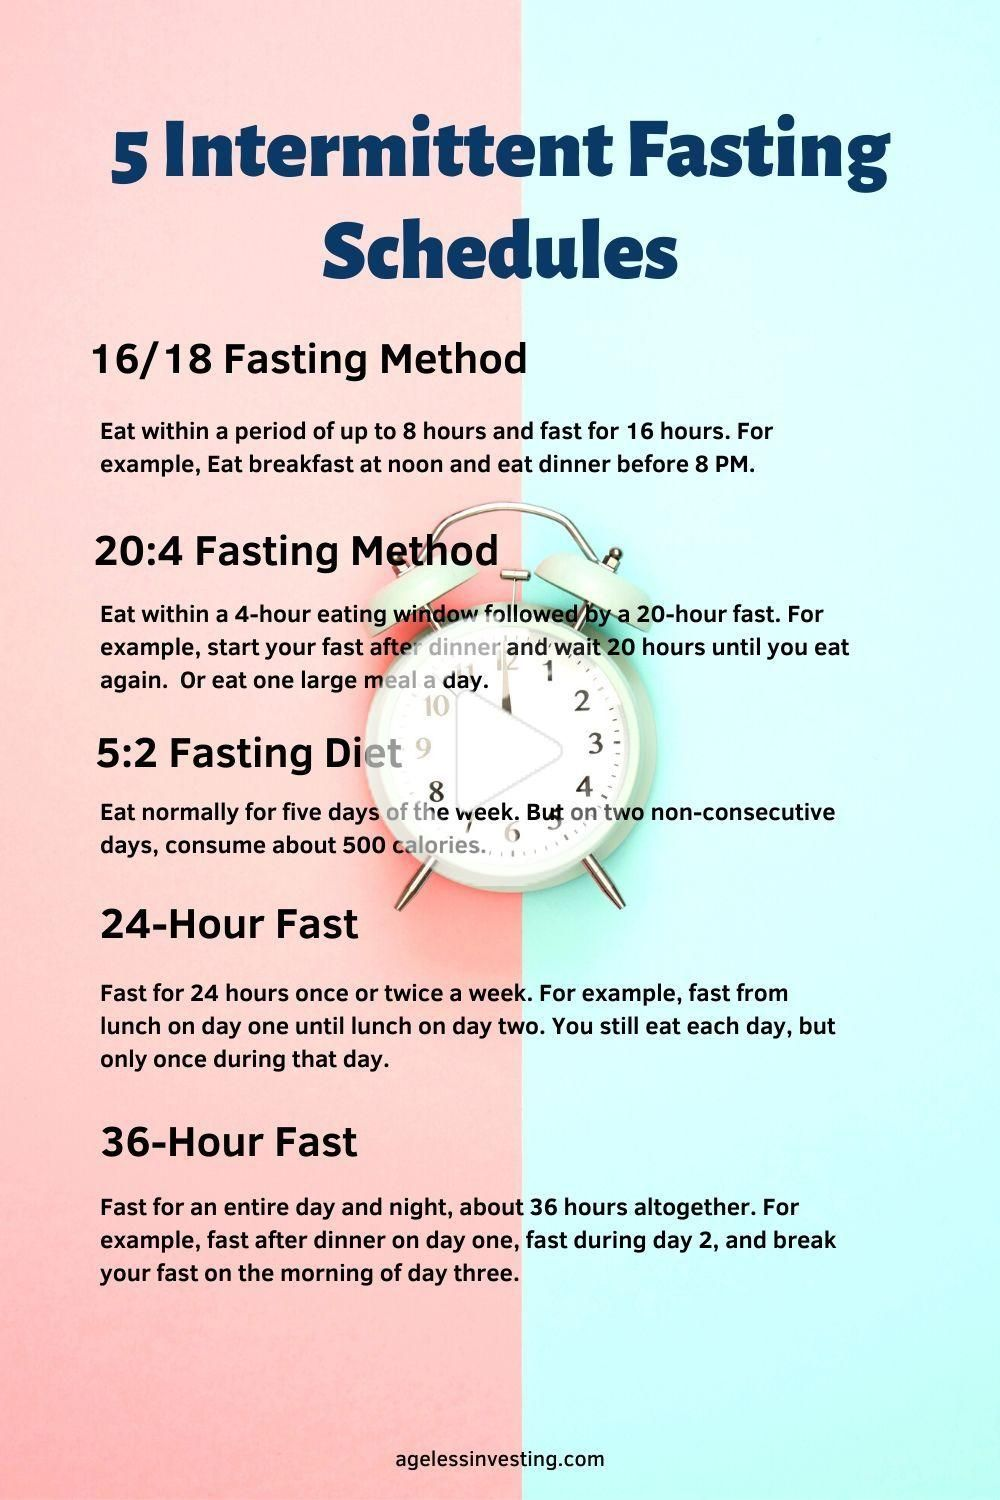 Learn the best intermittent fasting schedule, times, benefits, and plans for weight loss, health, an...